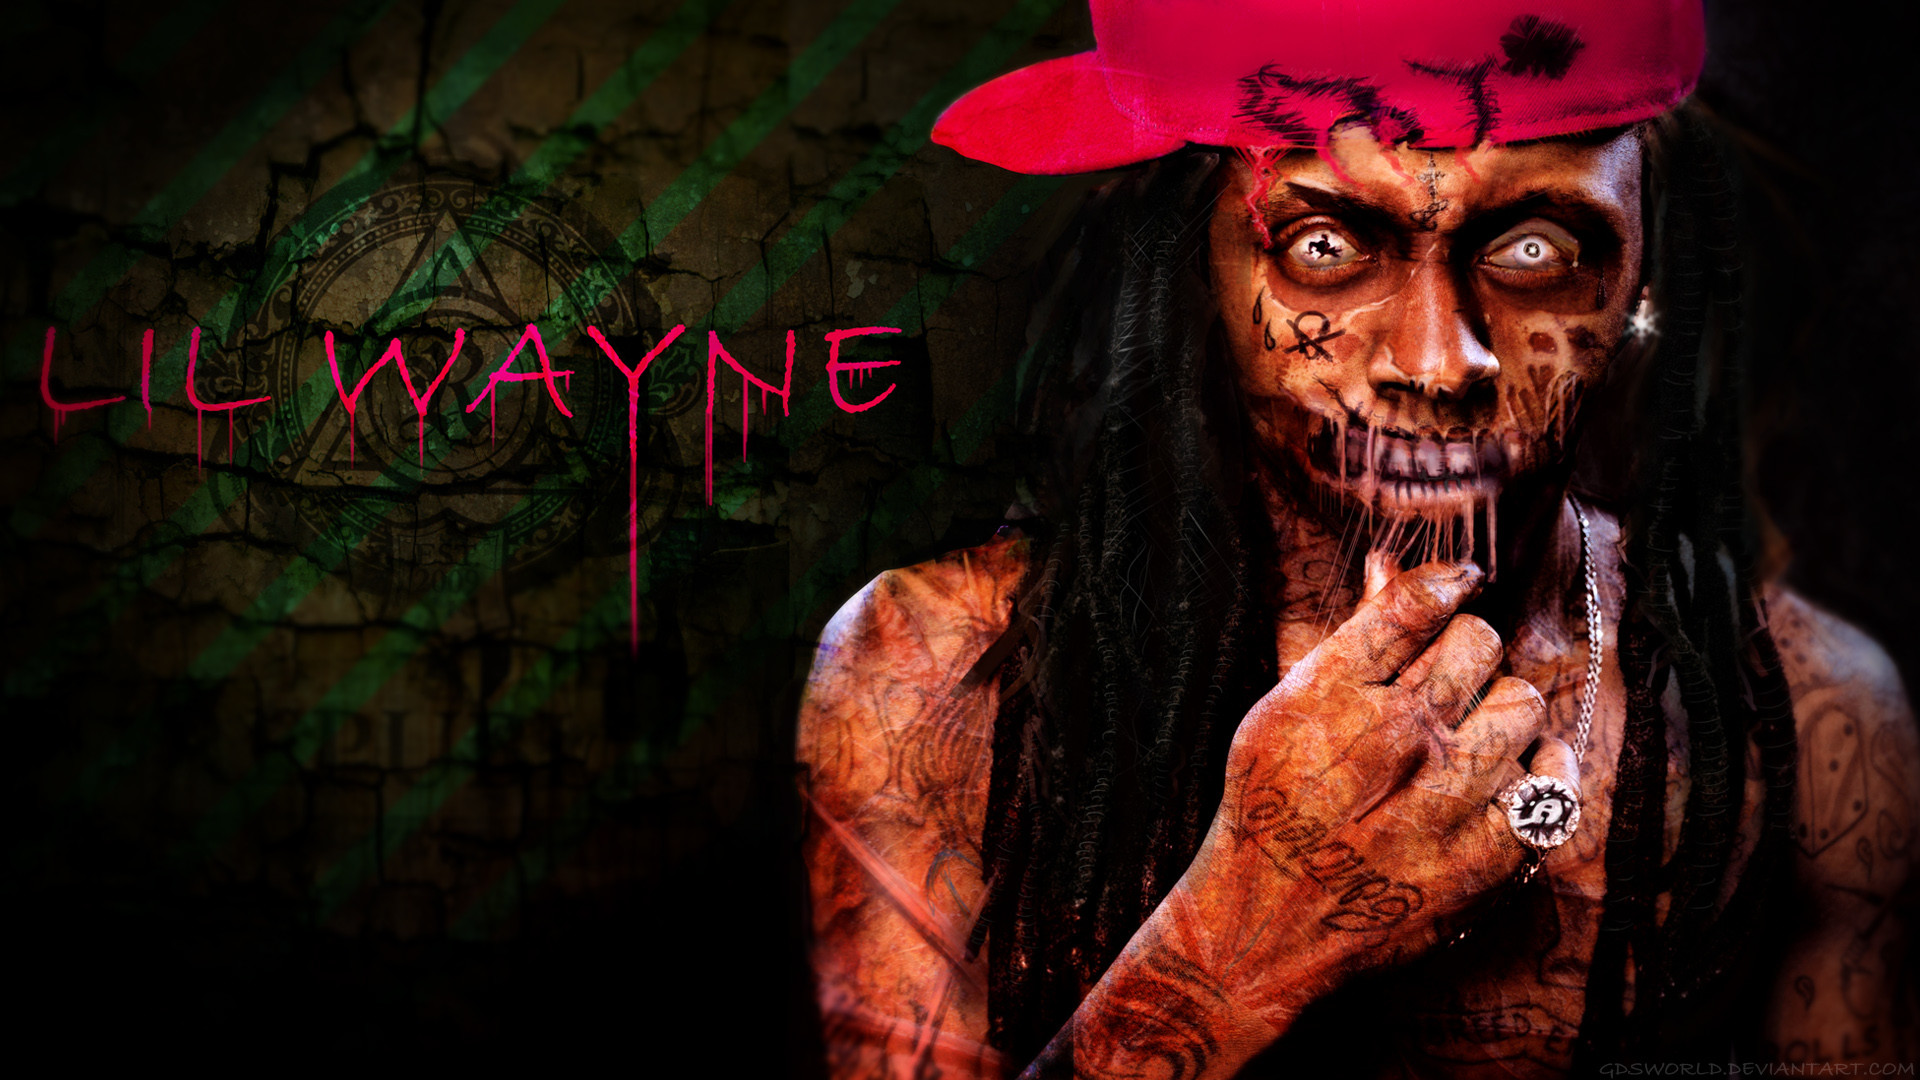 1920x1080 Lil Wayne Wallpapers Free Hdwallpaper20 Com